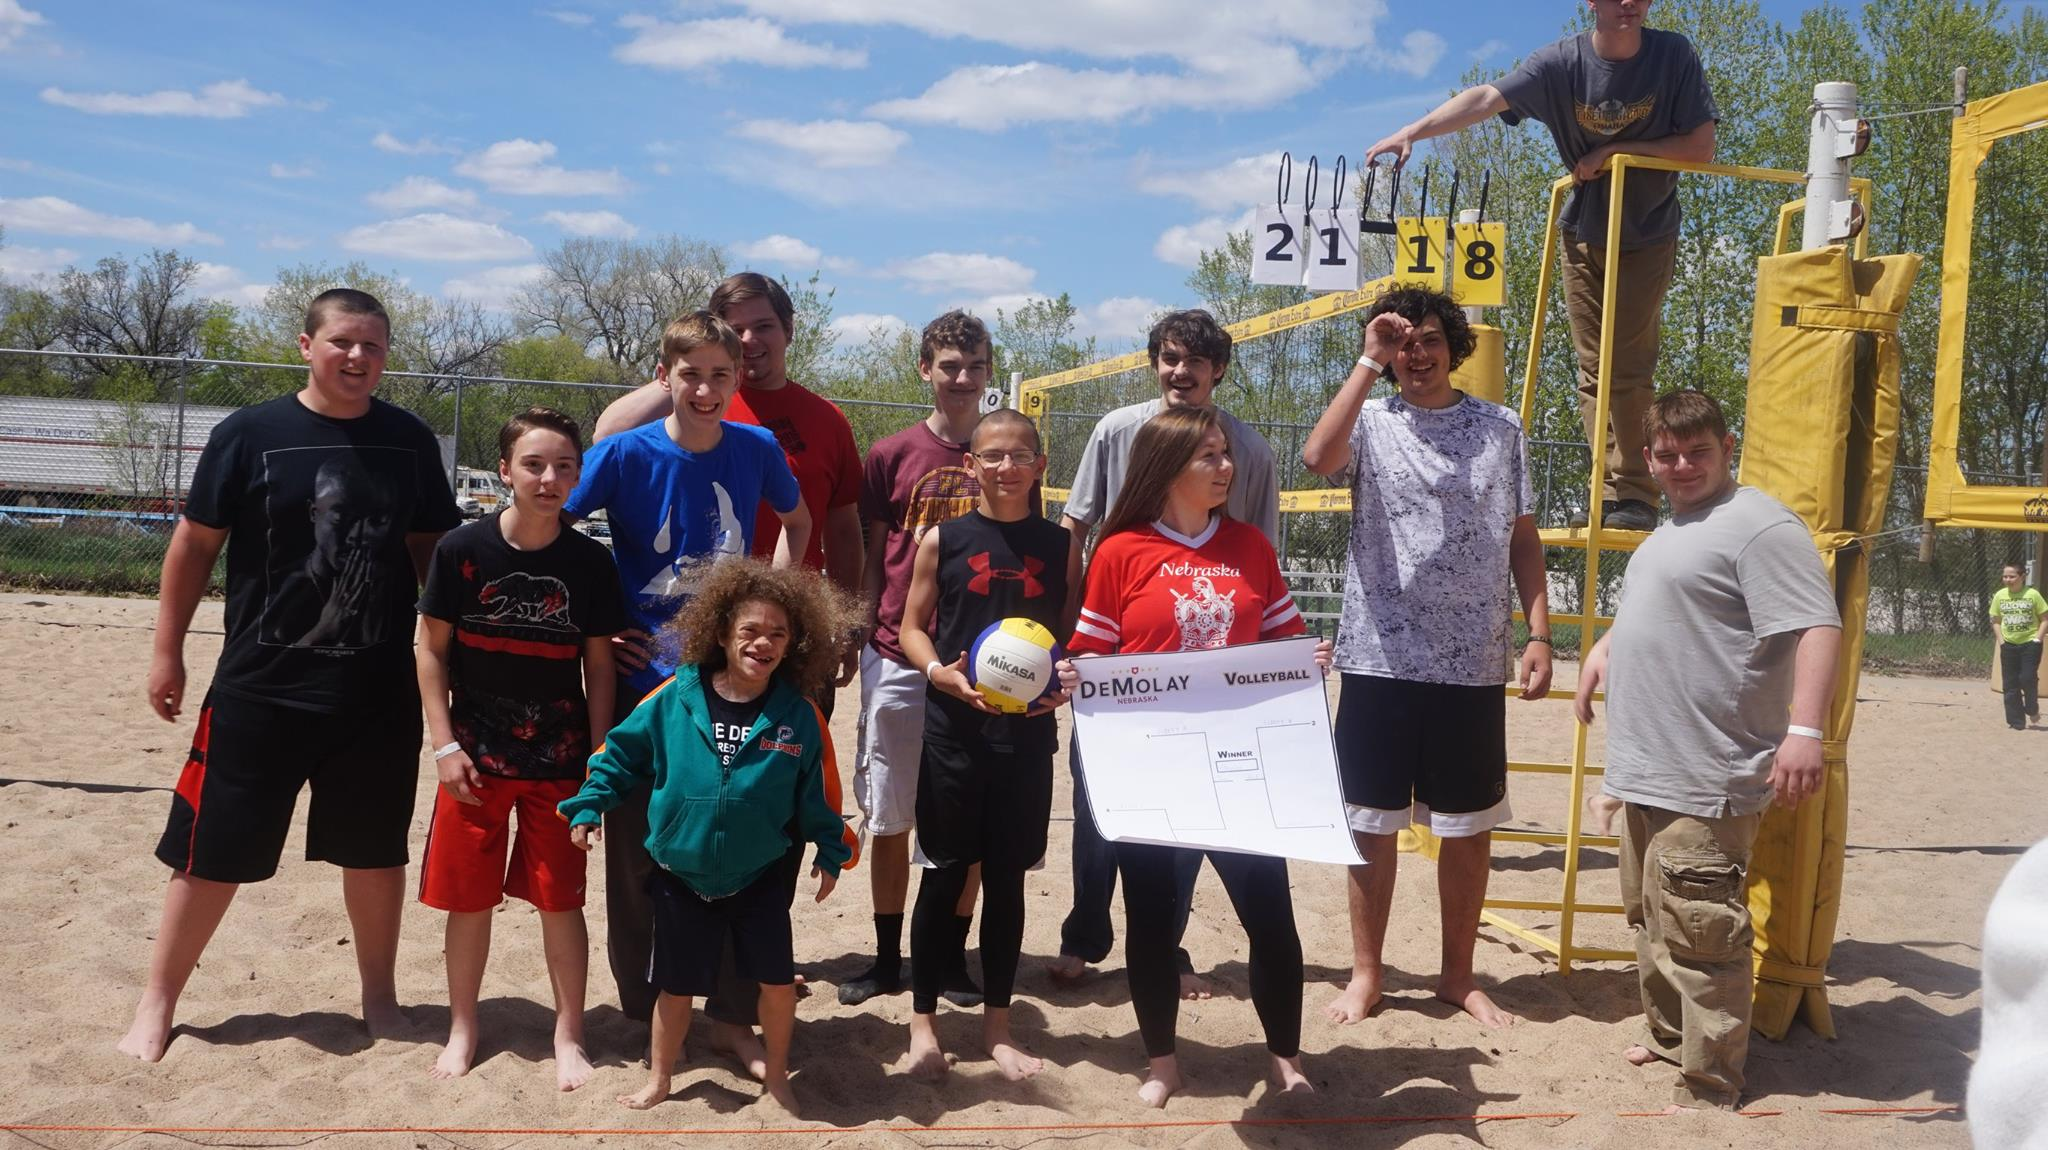 Omaha Chapter Wins Sand Volleyball 2017